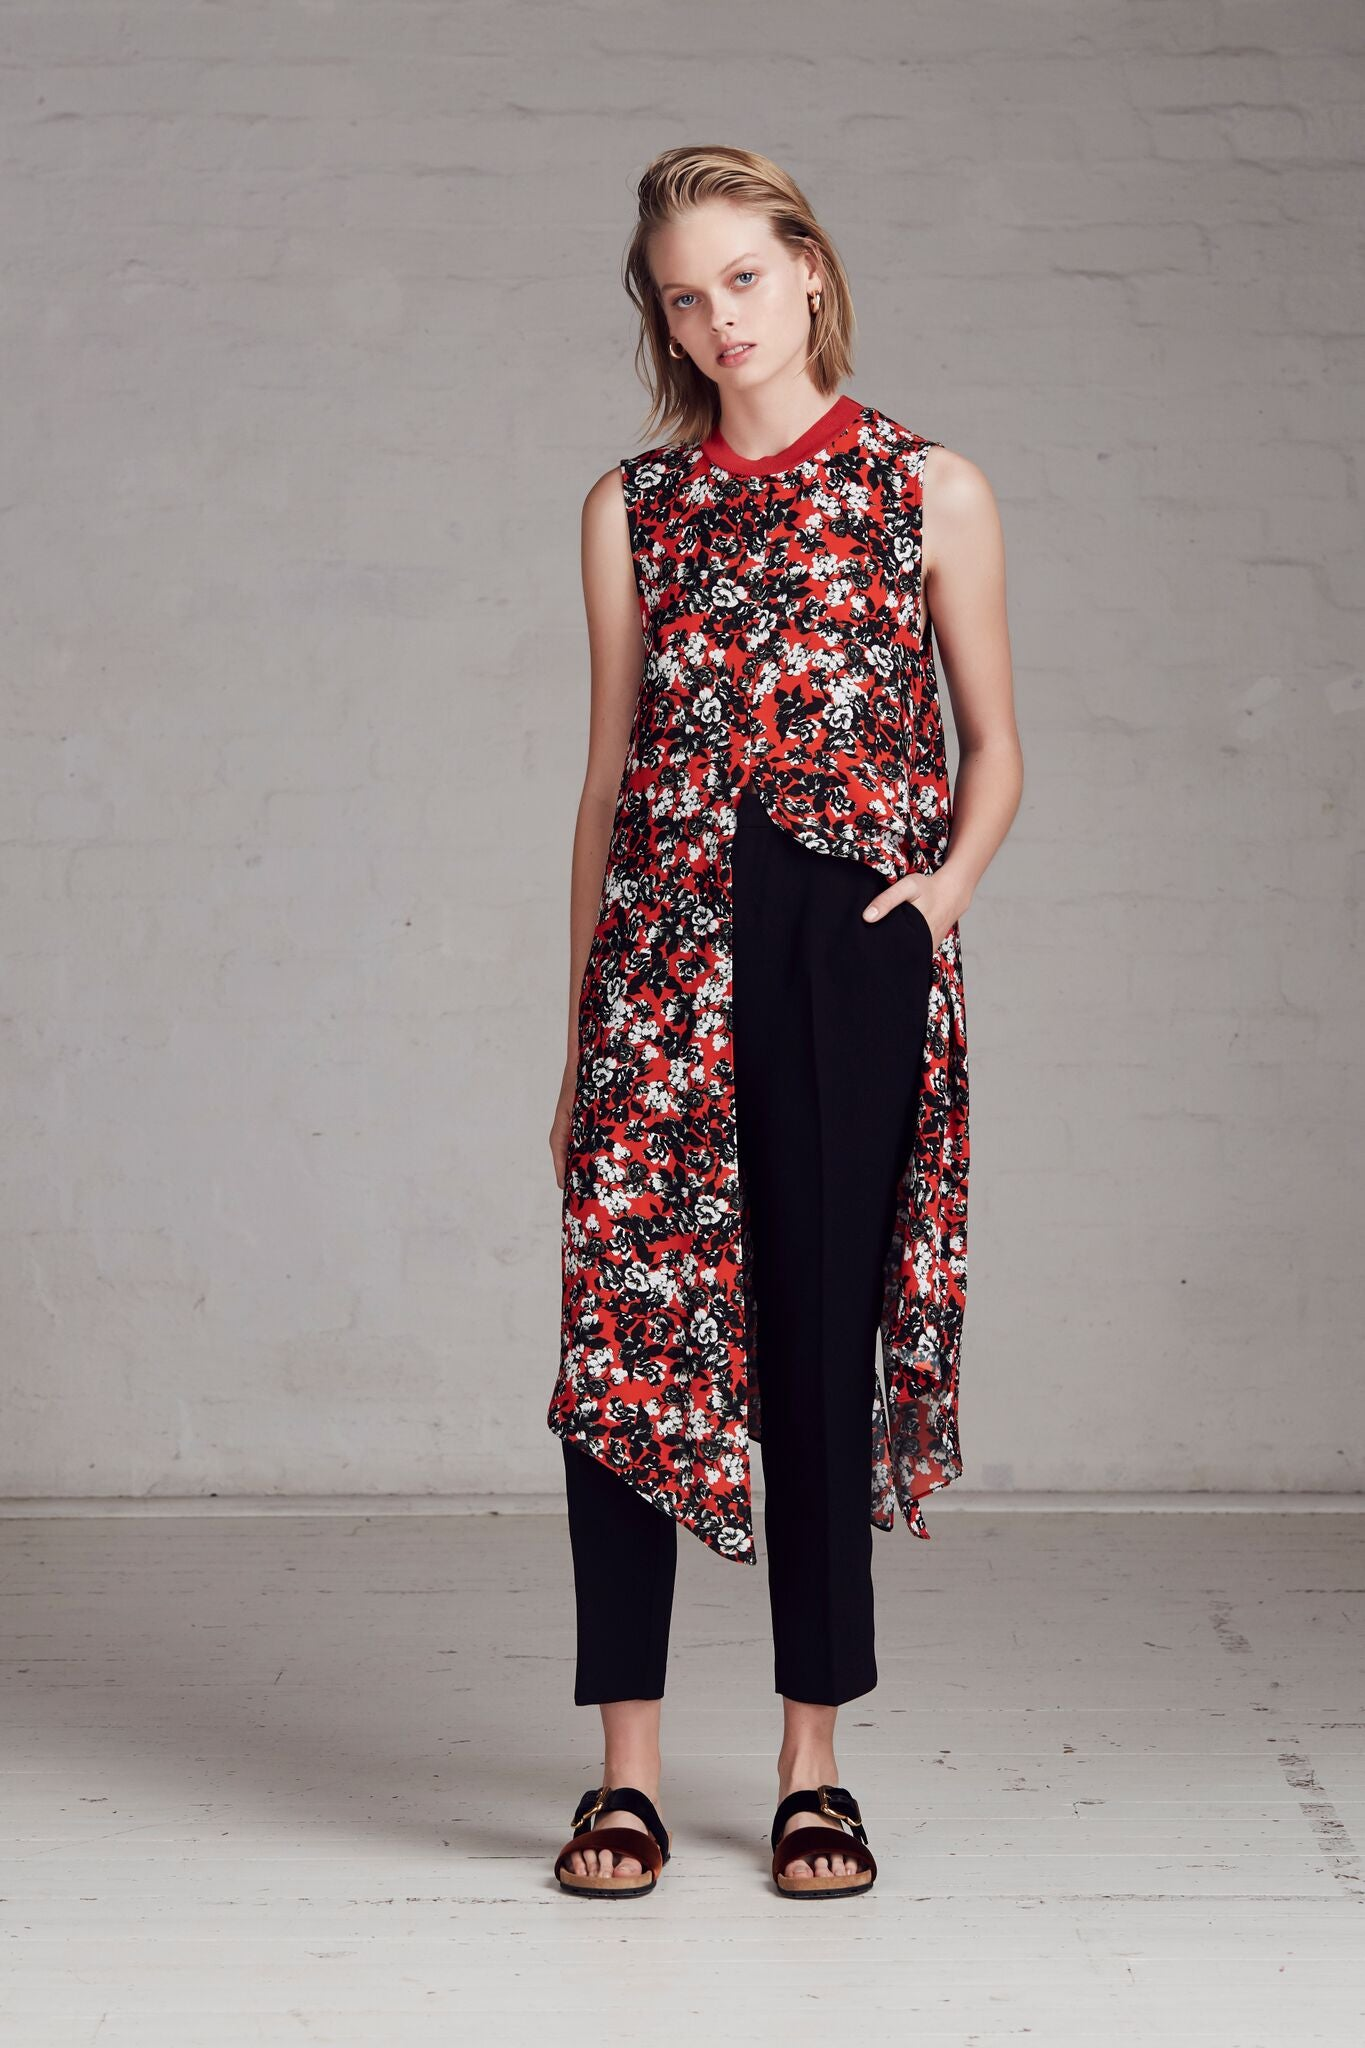 FWRD the Label Velma Longline Top - Floral - Stevie May, The East Order, Talulah, Pasduchas, Everly Collective